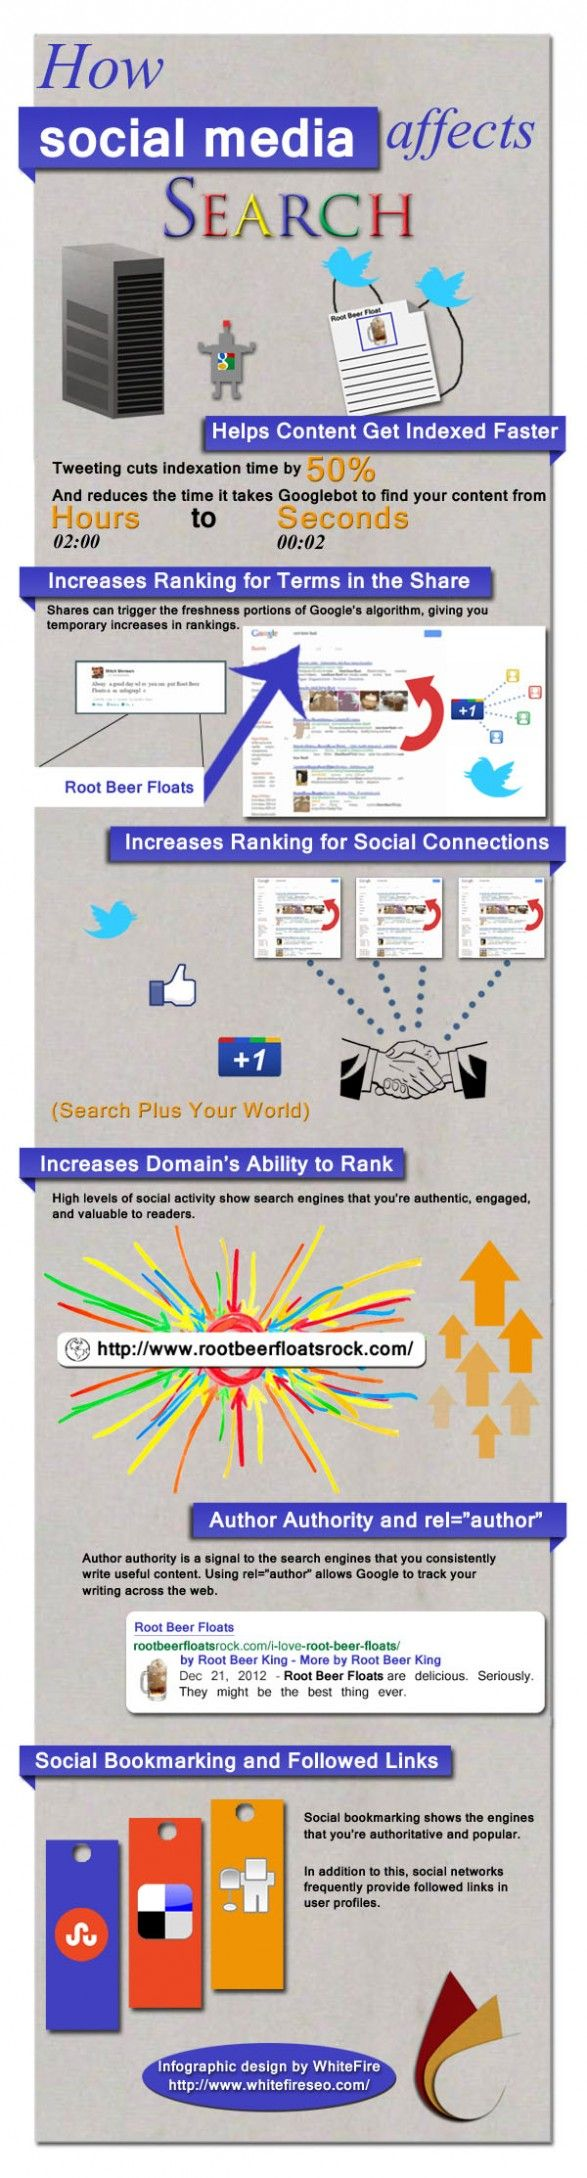 How Social Media Affects Search